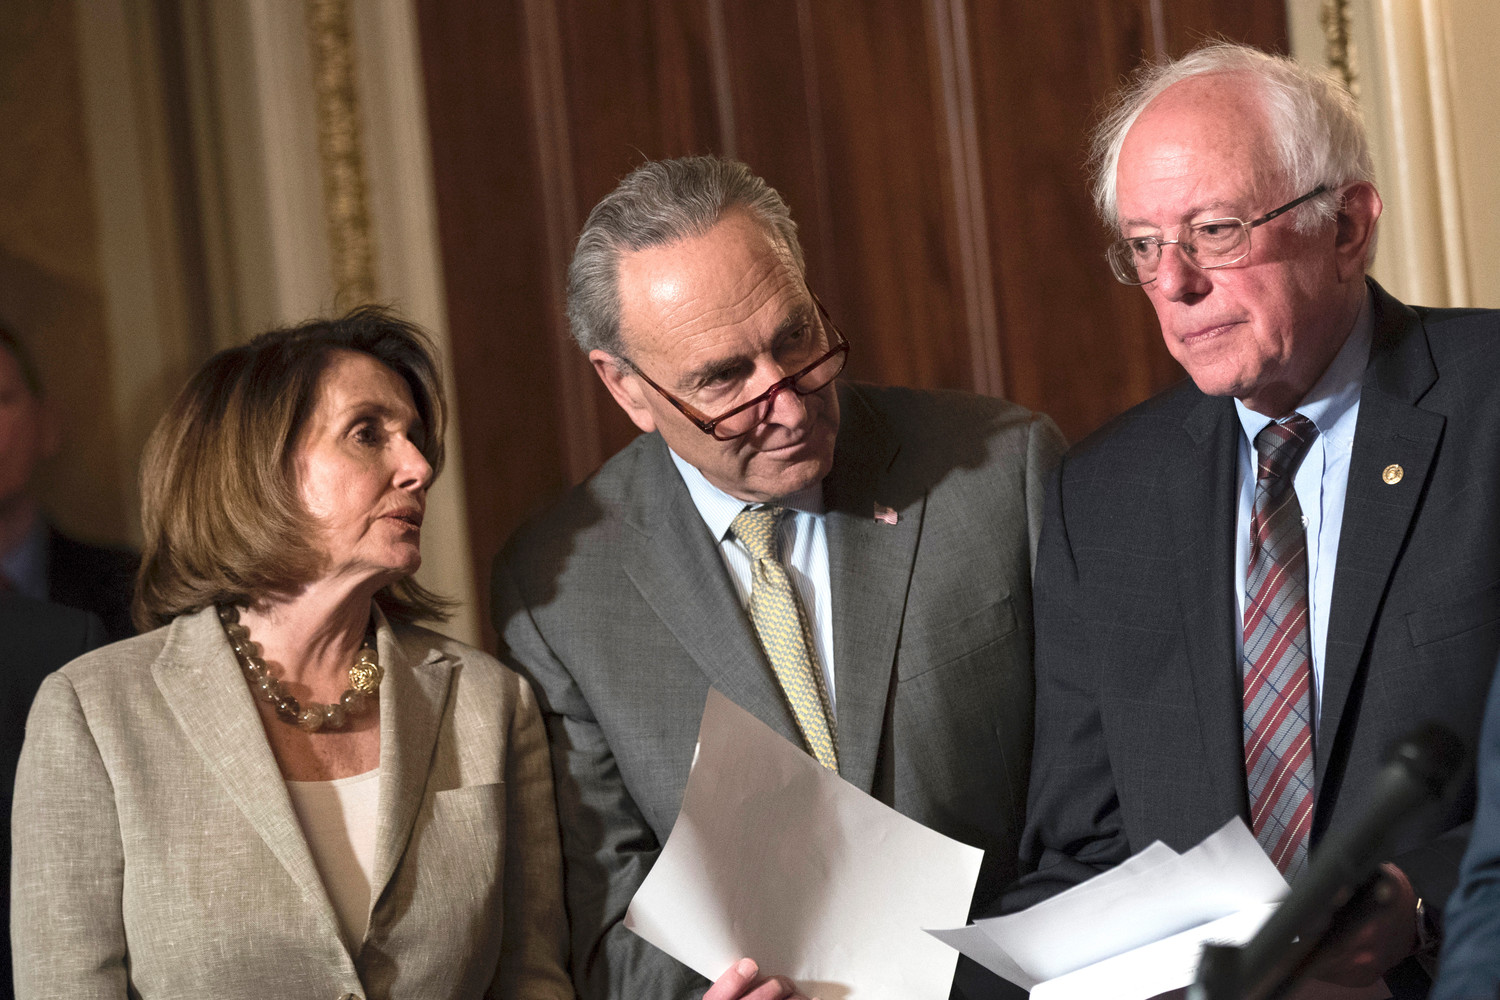 House Minority Leader Nancy Pelosi, Senate Minority Leader Chuck Schumer, and Sen. Bernie Sanders confer during a press conference on Capitol Hill, May 25, 2017 in Washington, DC.